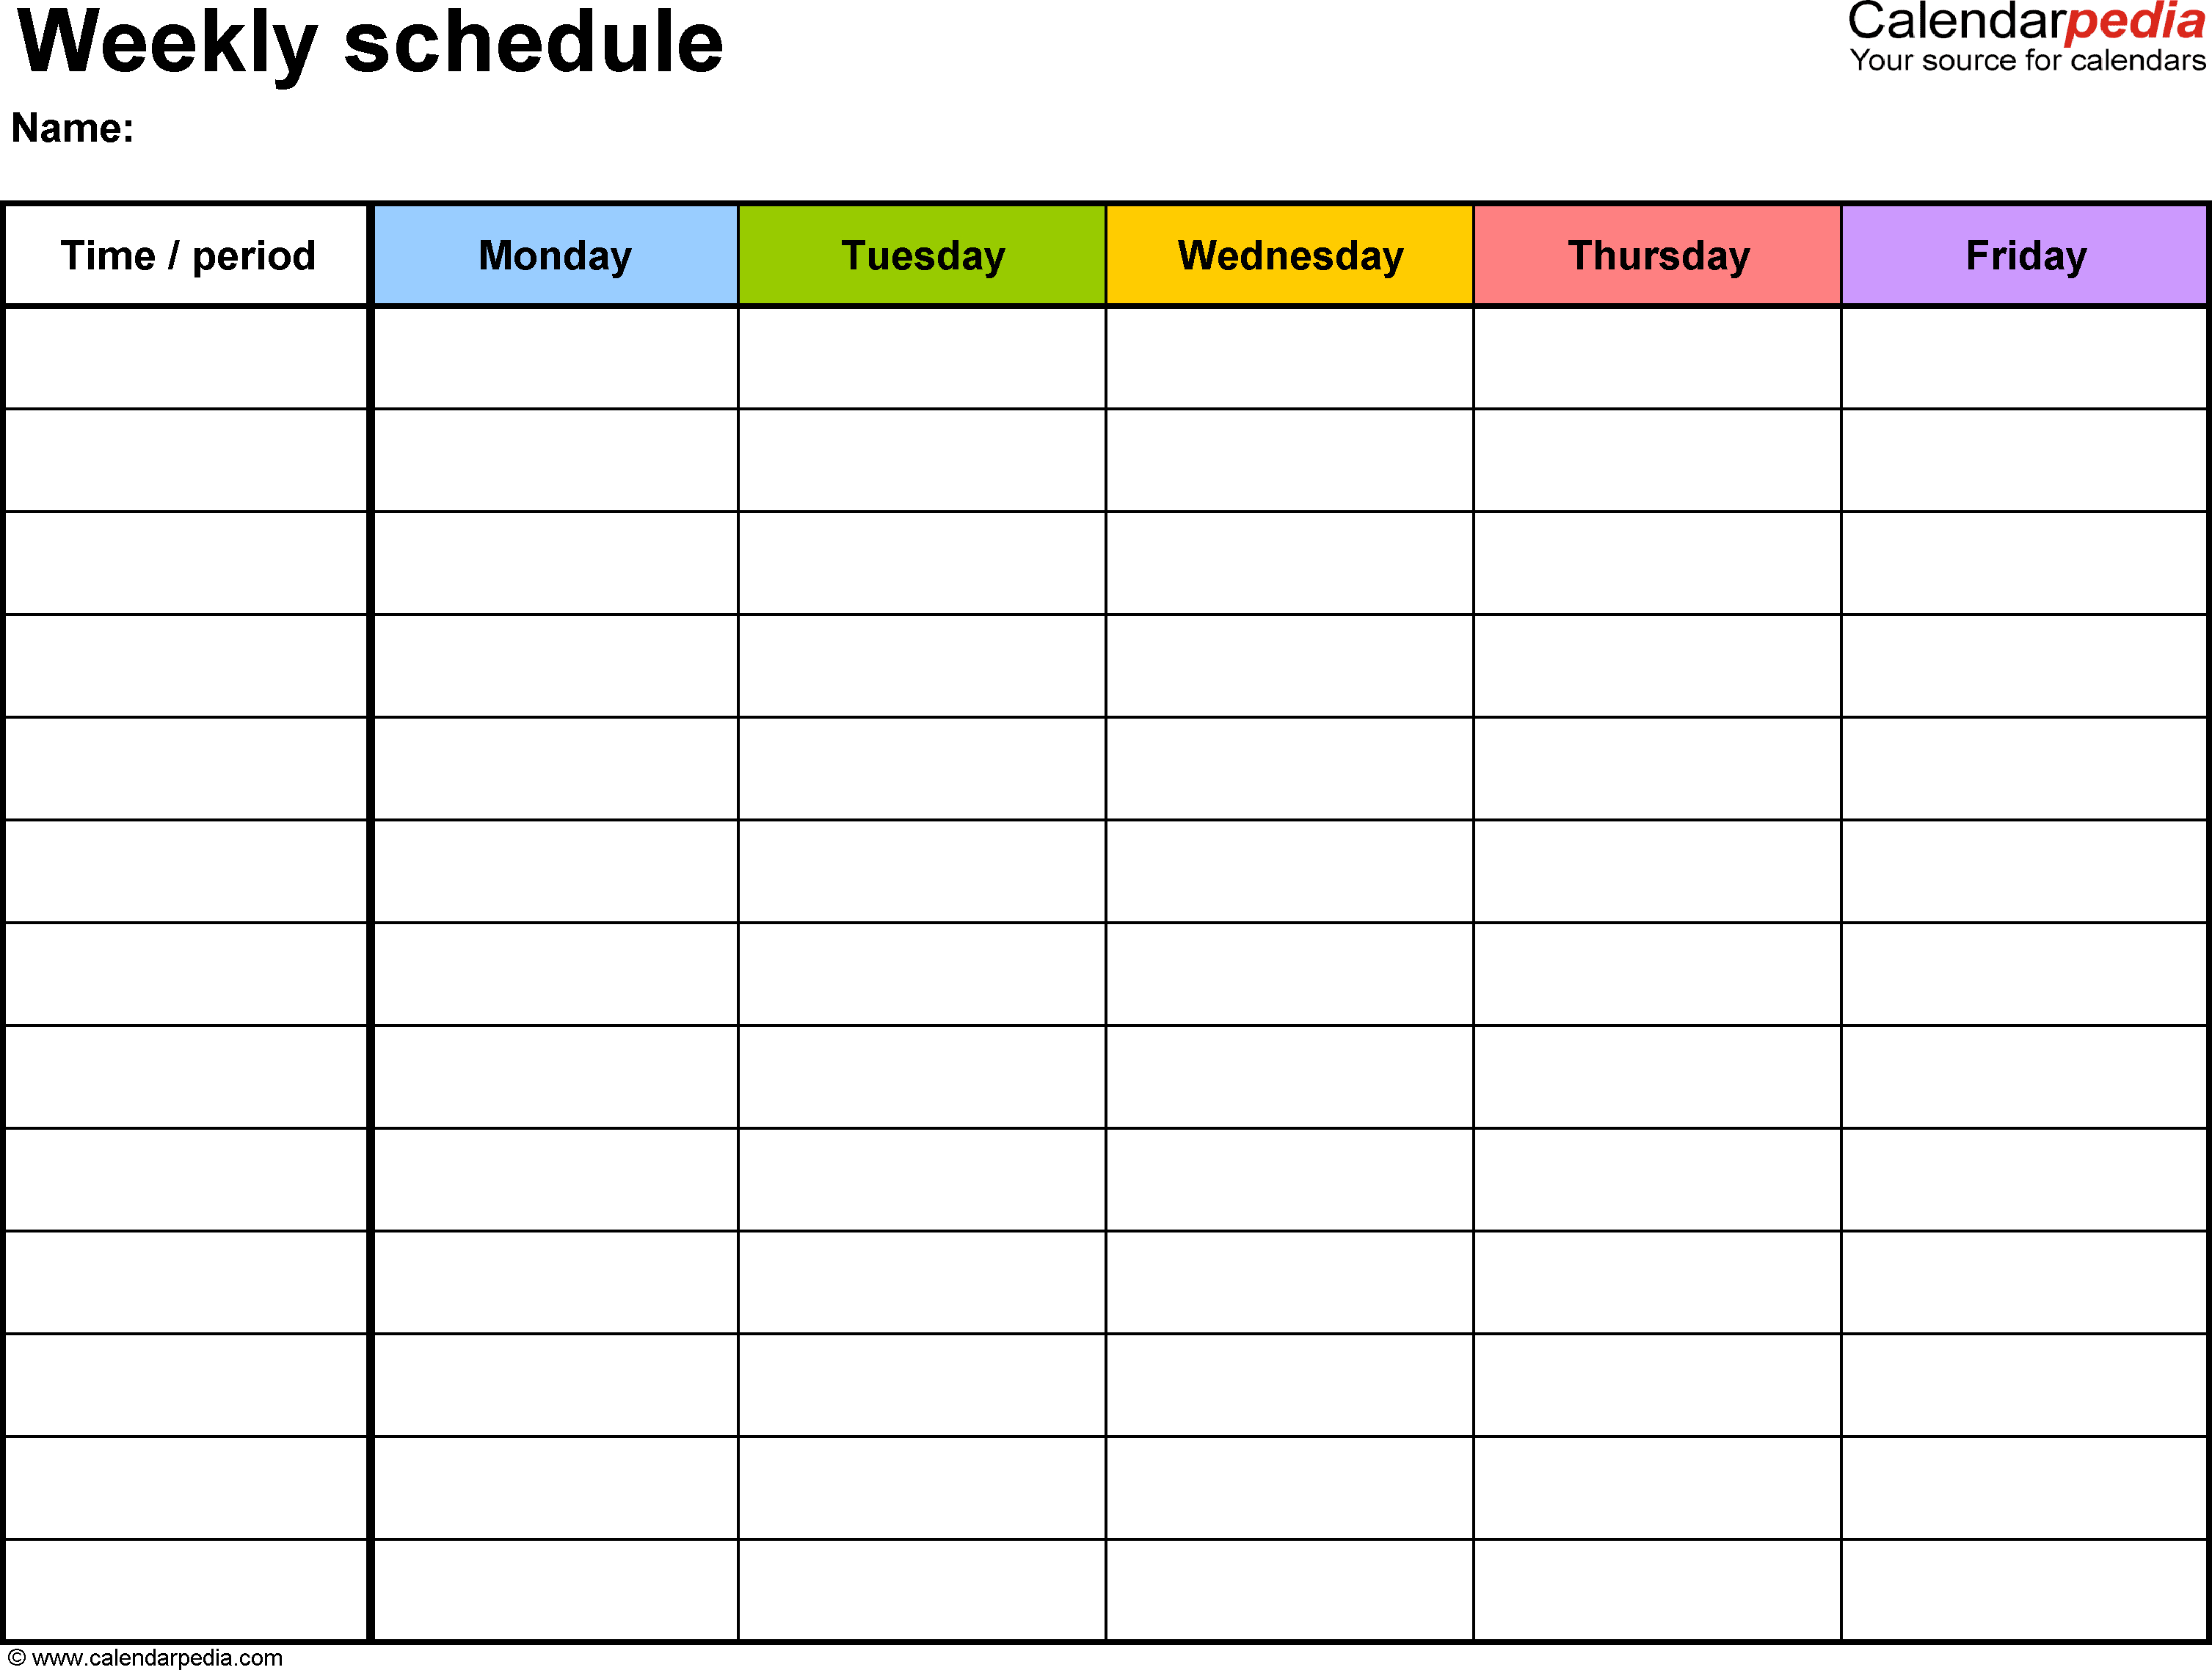 Free Weekly Schedule Templates For Word - 18 Templates in Weekly Calendar Template 5 Days